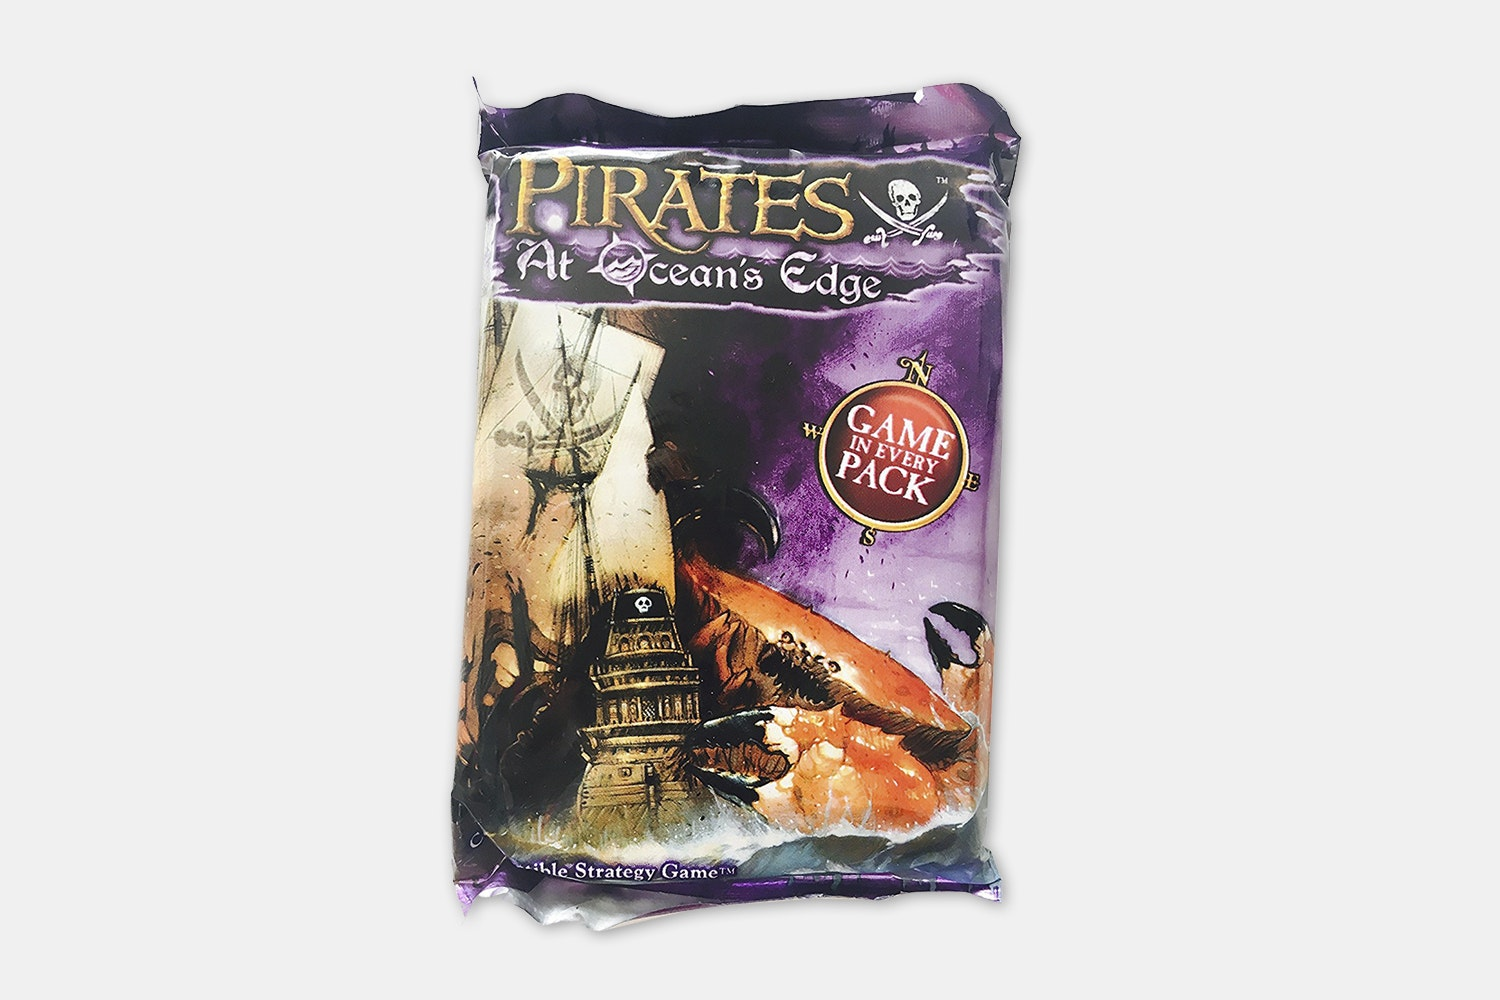 Pirates At Ocean's Edge Pirates At Ocean's Edge Booster Pack